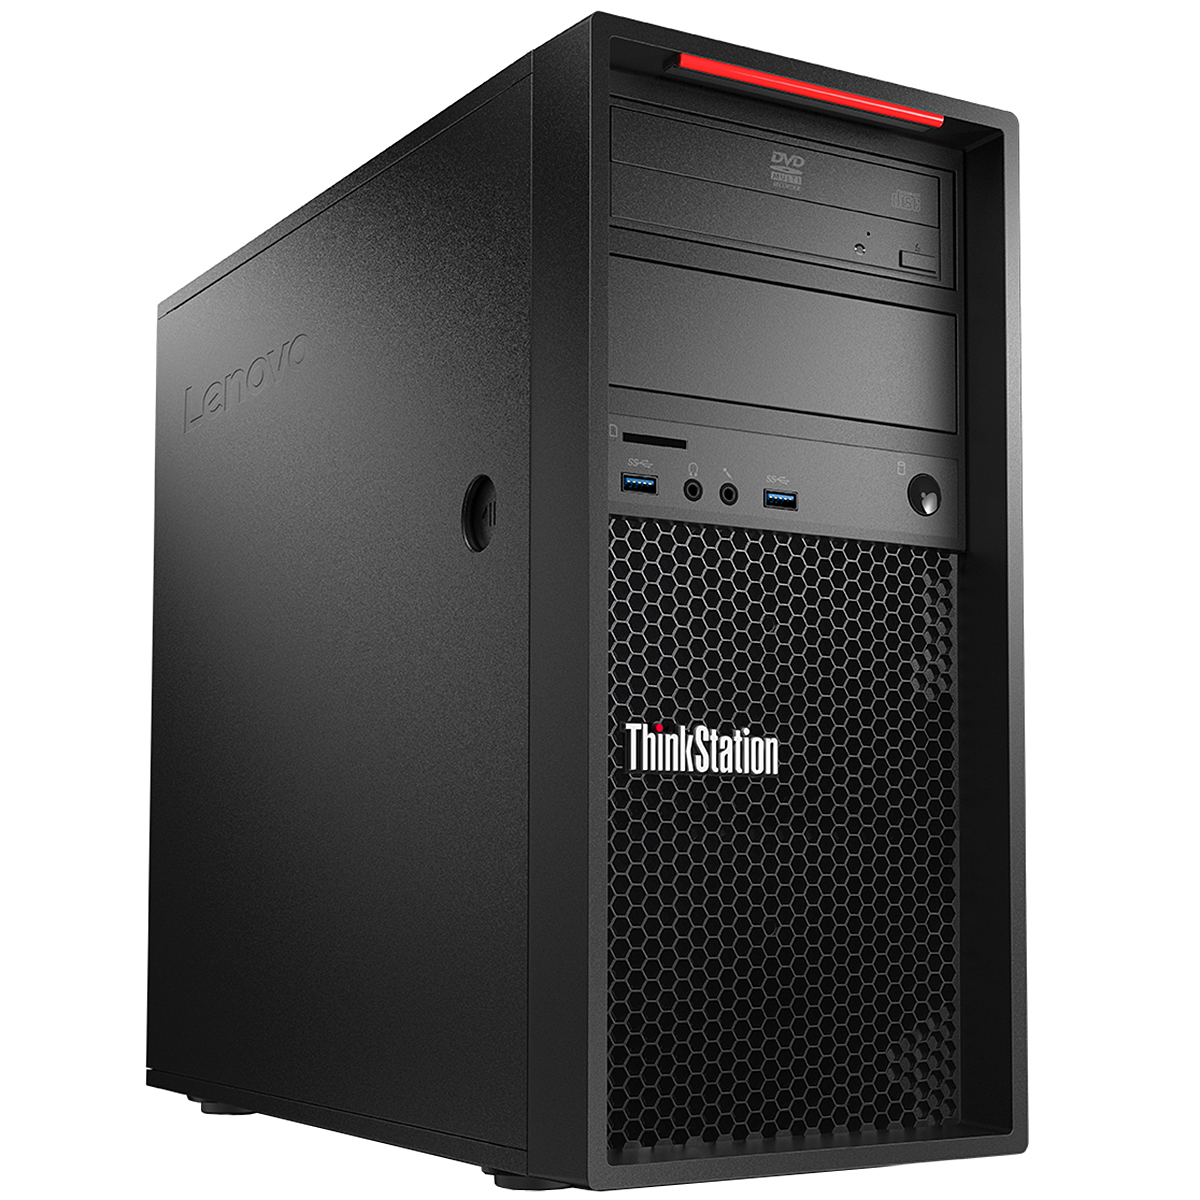 lenovo thinkstation p410 tour 30b3001bfr pc de bureau lenovo sur. Black Bedroom Furniture Sets. Home Design Ideas